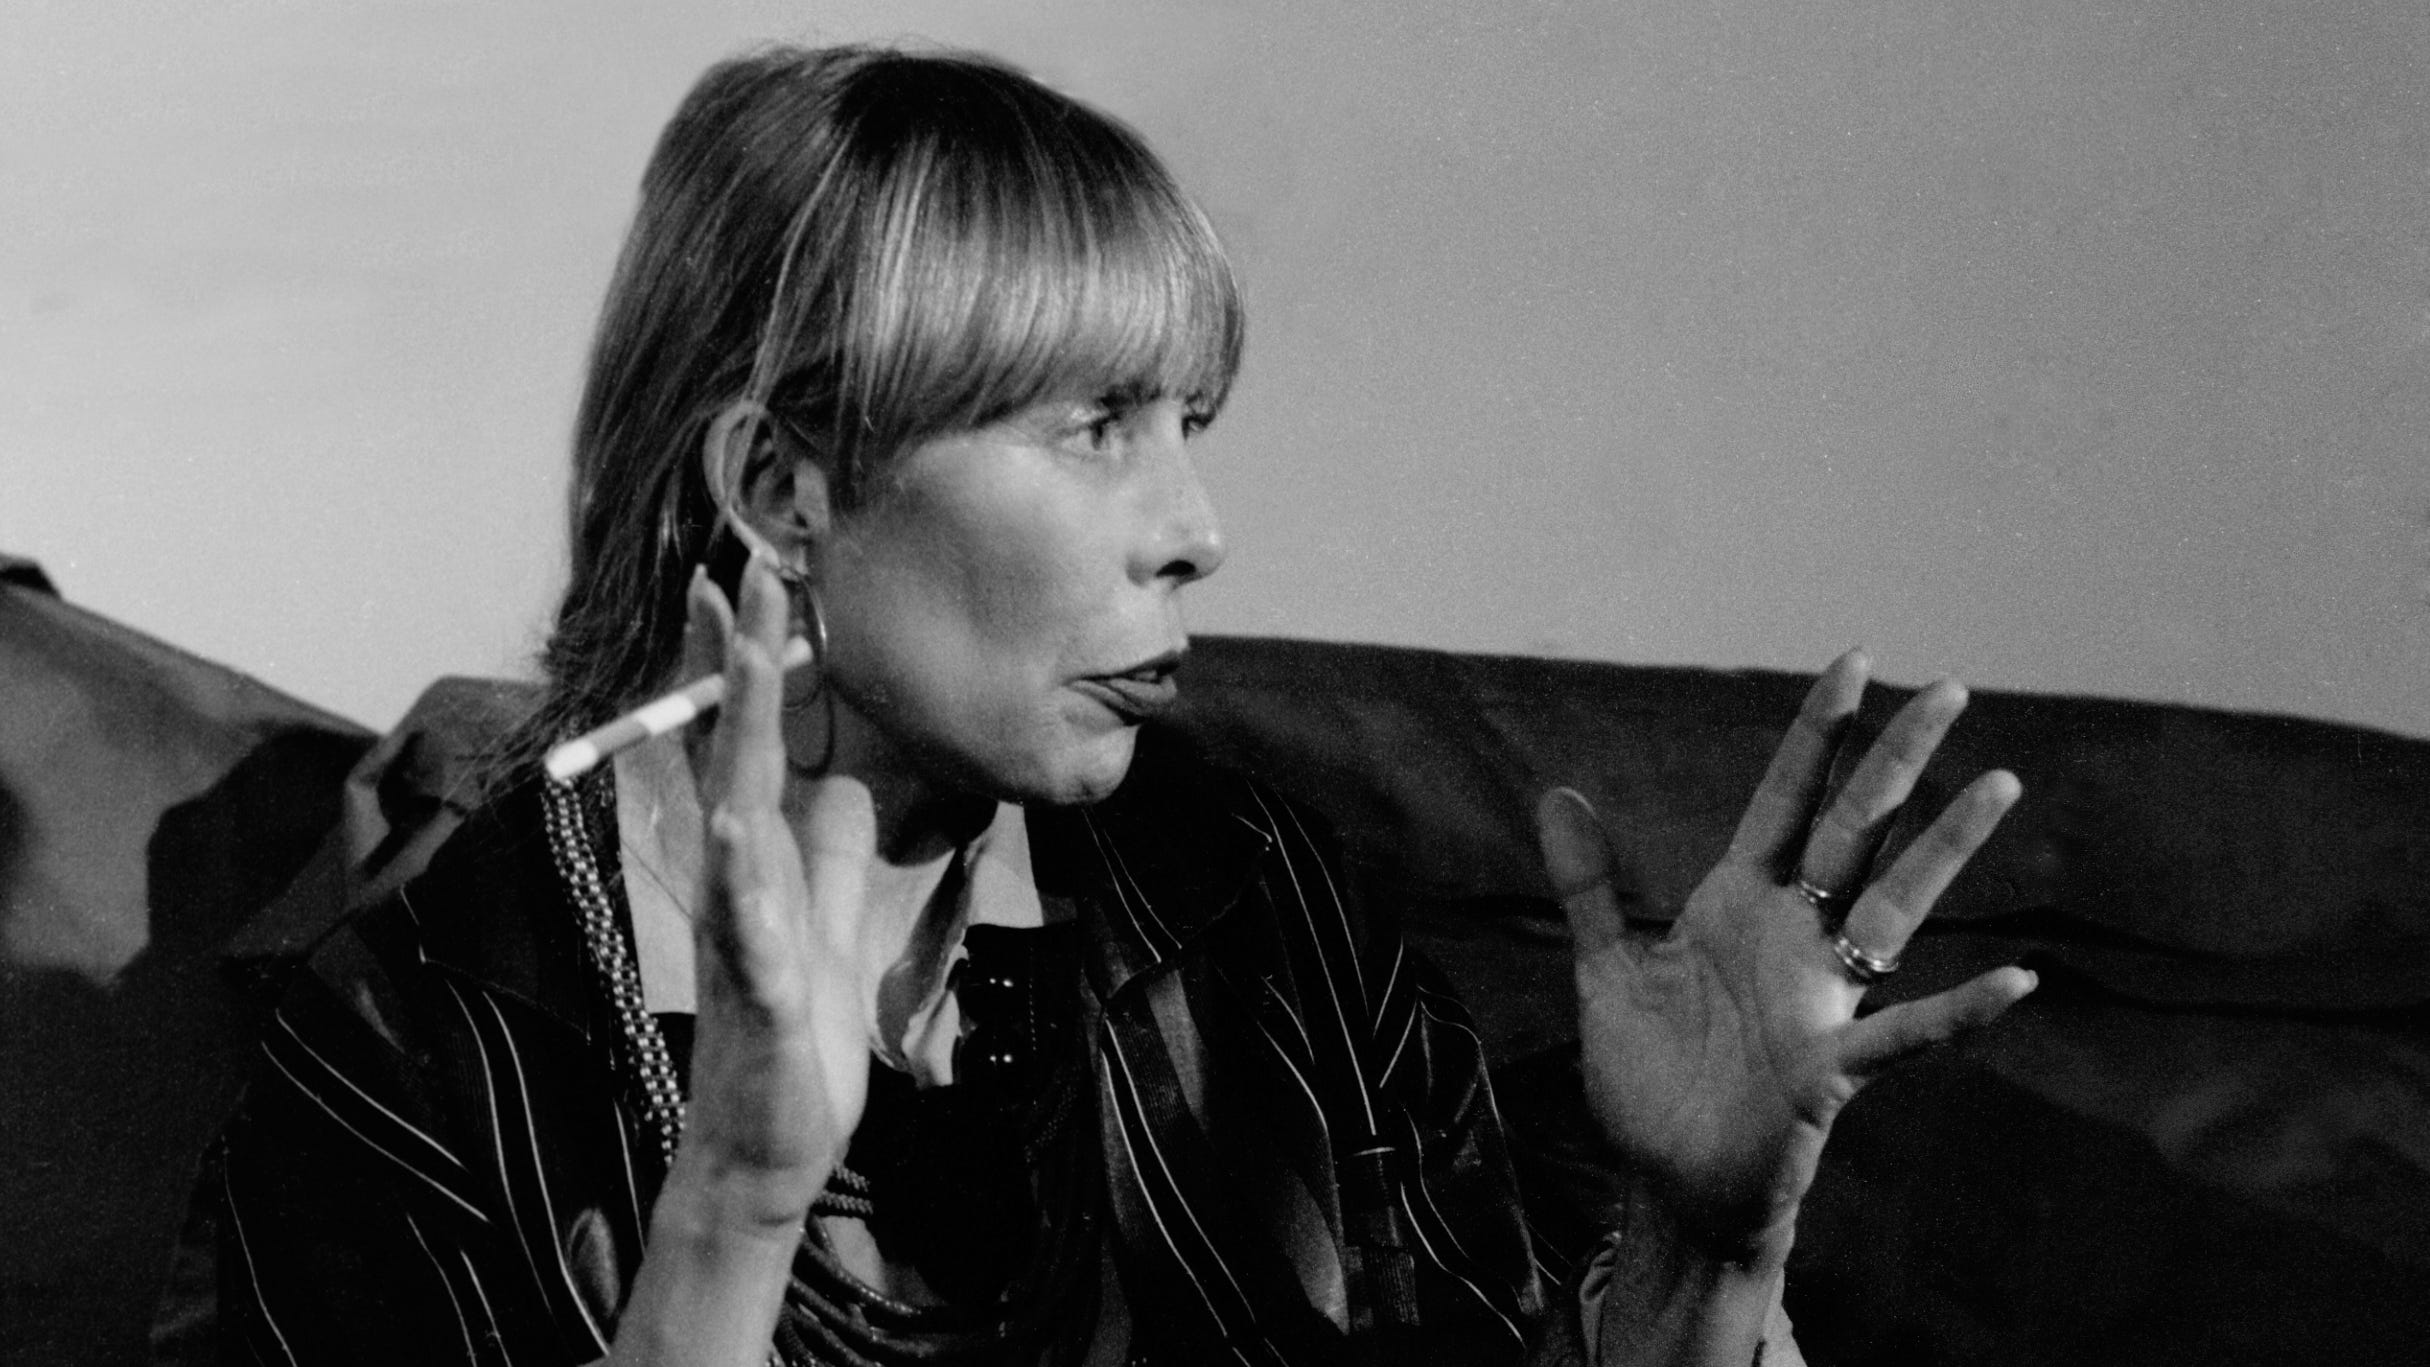 Joni Mitchell in 1988, with trademark cigarette in hand.